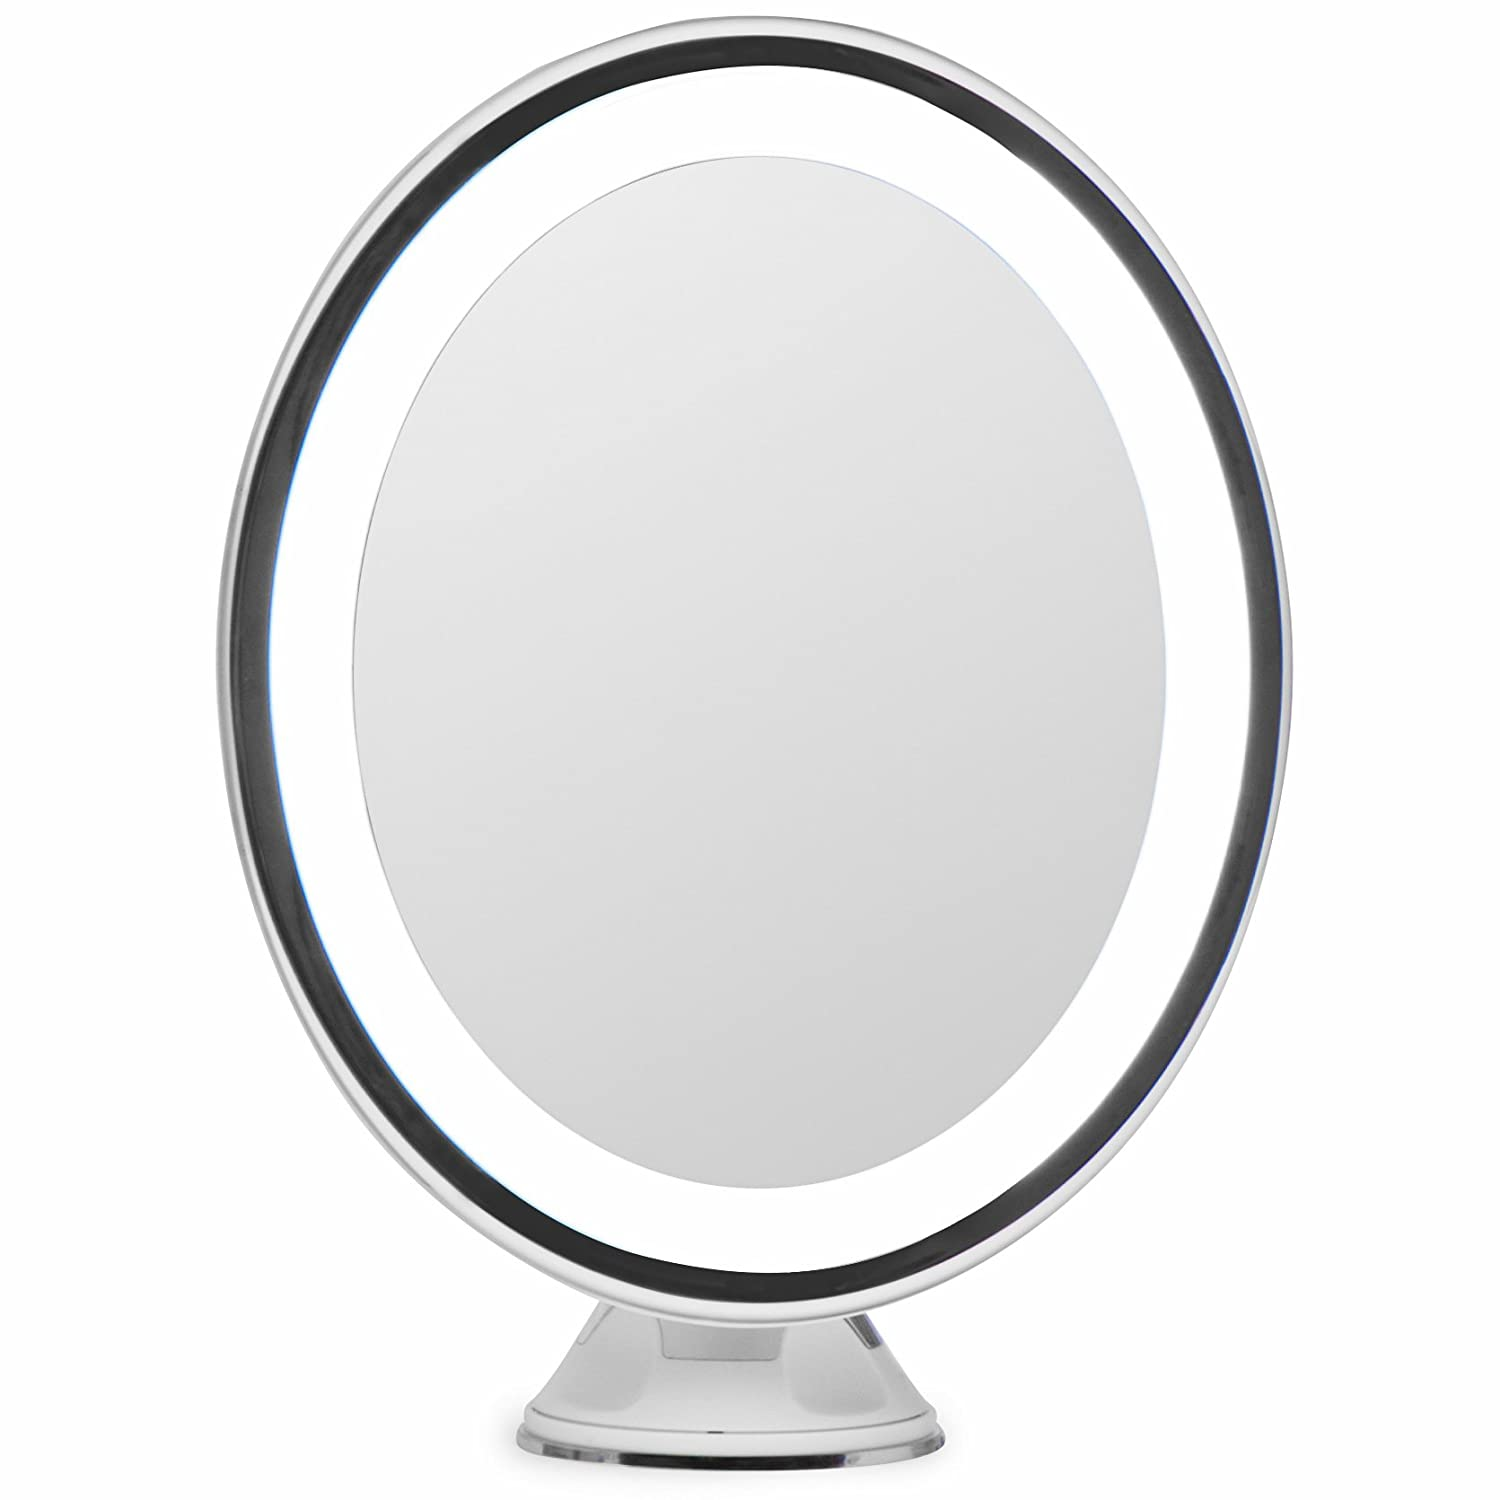 LightLUXE 5X Lighted Magnifying Makeup Mirror w/Bright LED Lights, 360 Swivel, Locking Suction & Unique Oval Countertop Mirrorvana